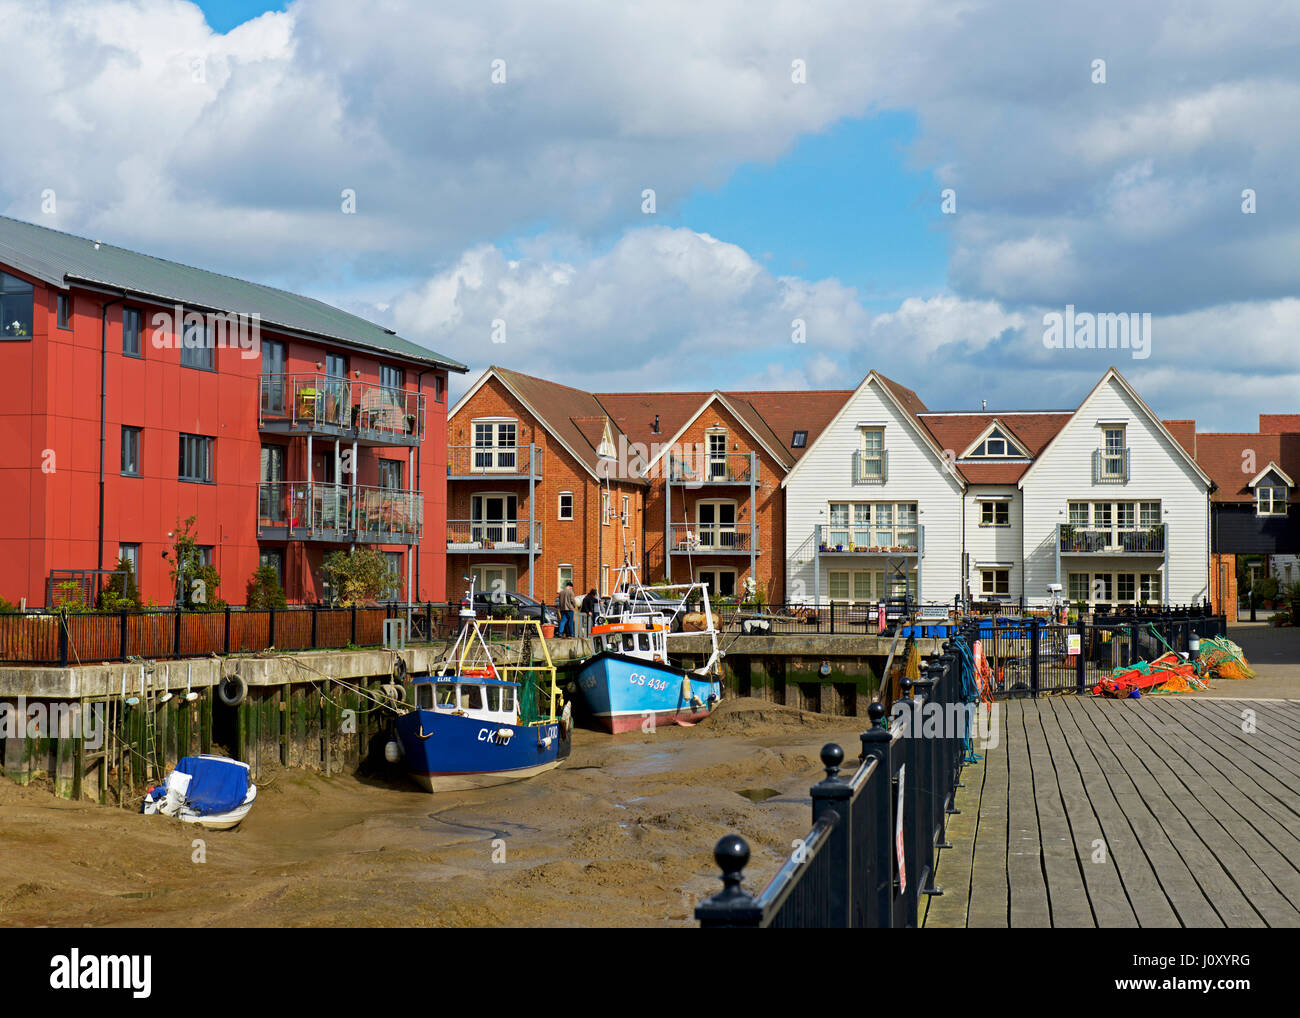 Apartments overlooking the River Colne, Wivenhoe, Essex, England UK - Stock Image